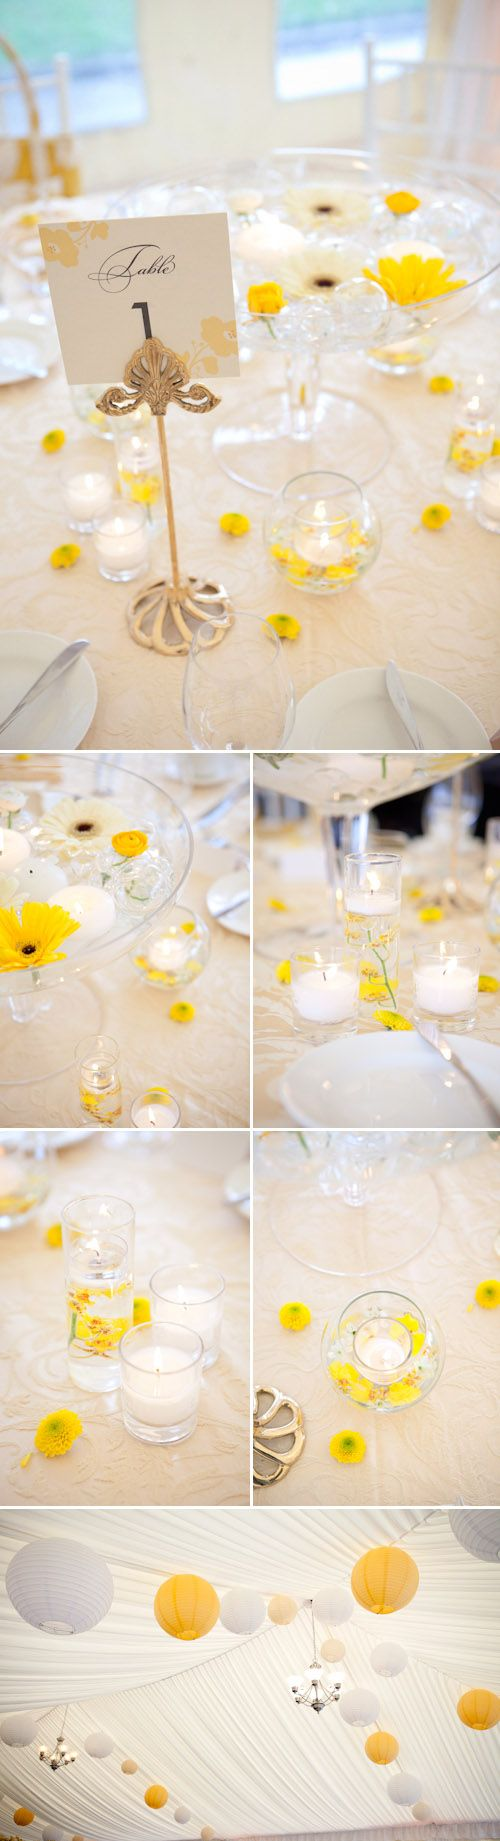 Yellow and White Spring Tabletop Designs from Woodmark Weddings ...